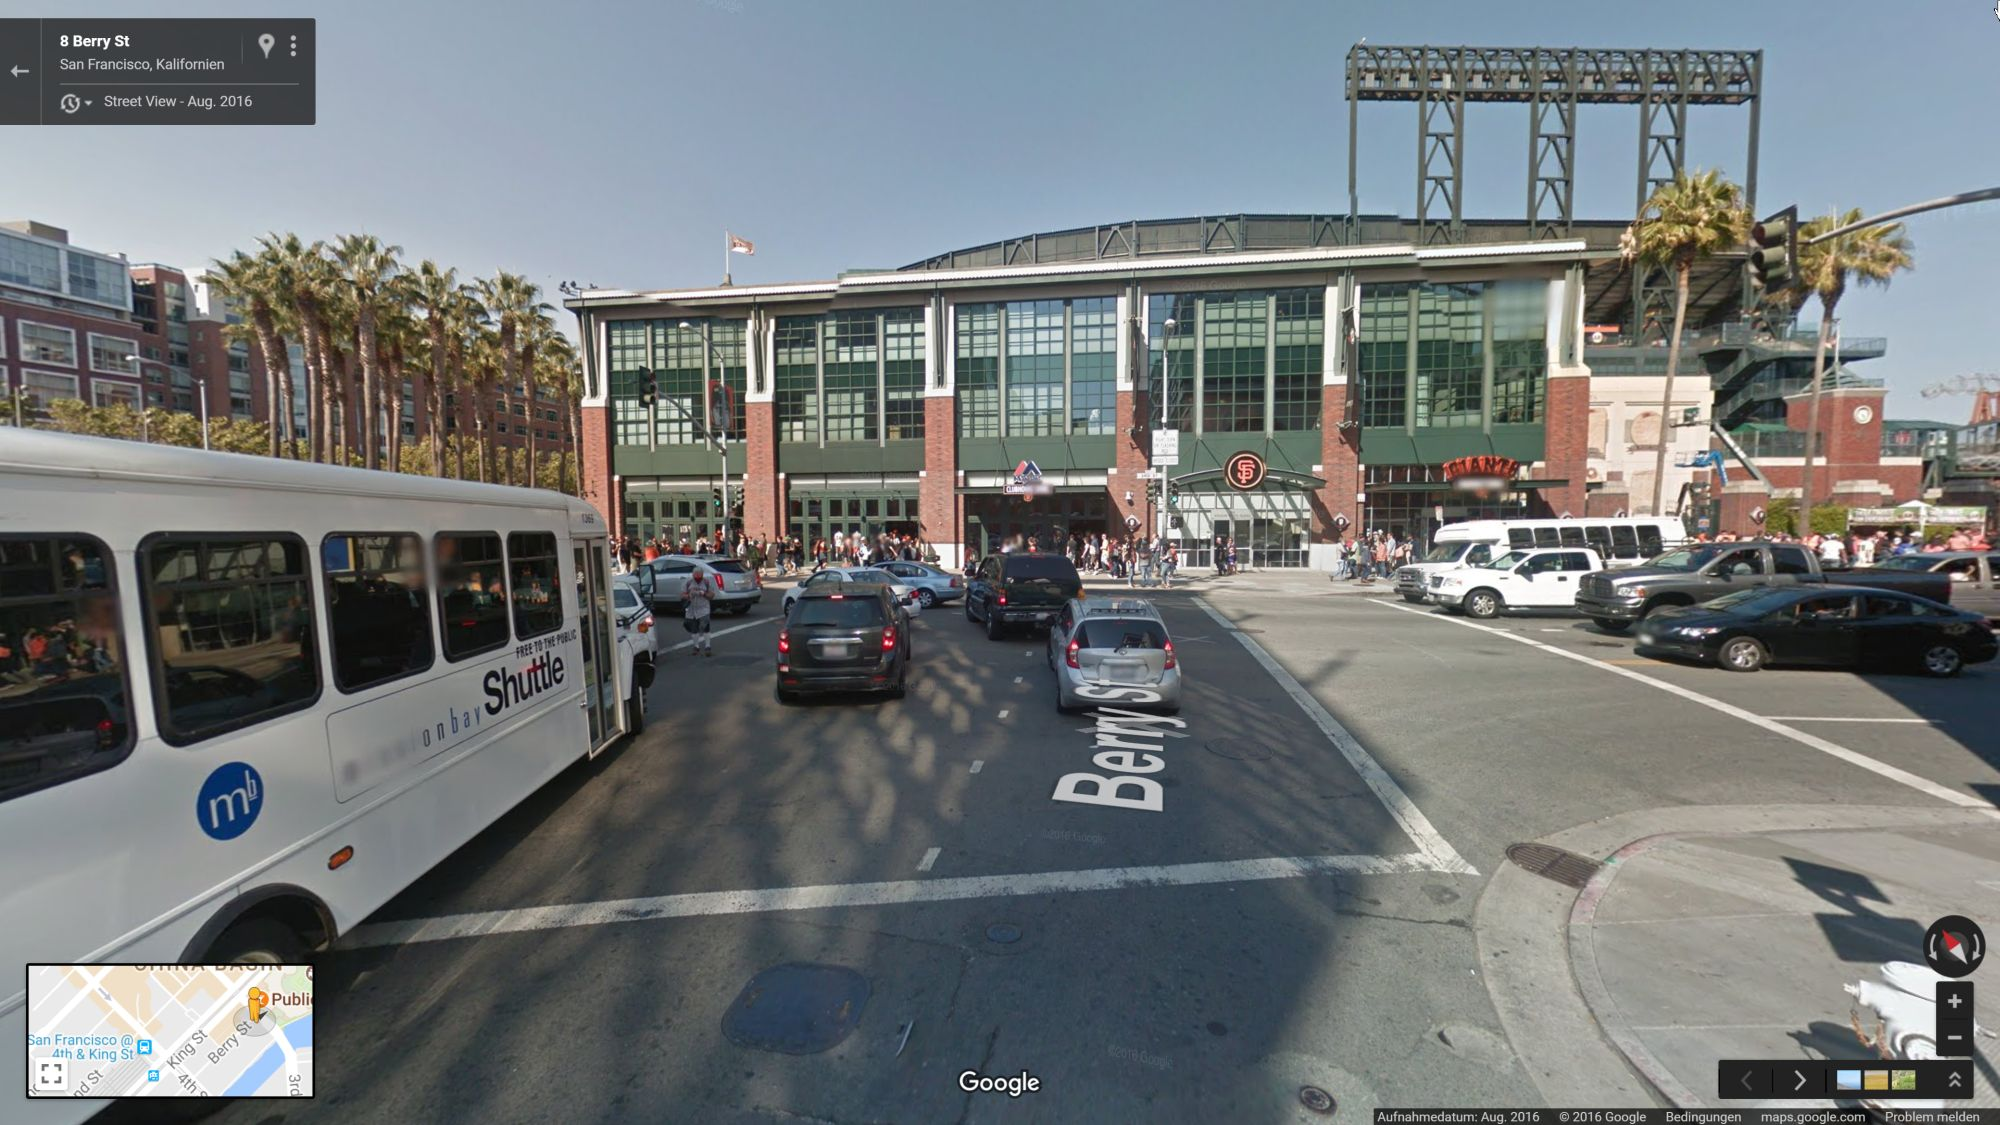 Only in San Francisco: Parking Enforcement Officer Tried to Force Me to Block an Intersection